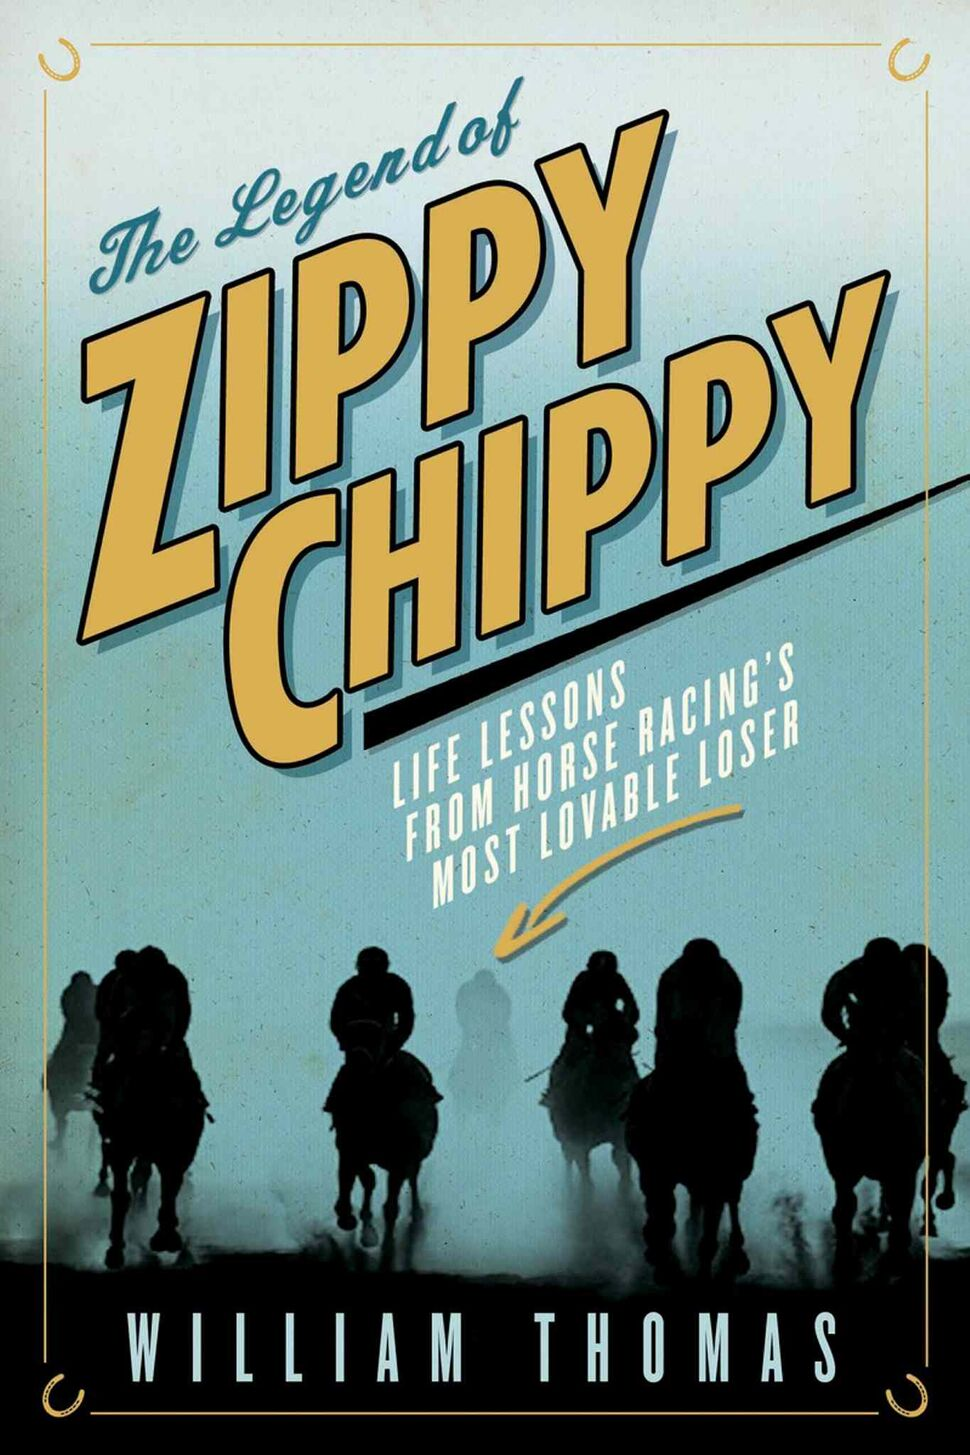 <h3>The Legend of Zippy Chippy: Life Lessons From Horse Racing's Most Lovable Loser</h3> <br/>  By William Thomas <br/> <strong>Gamblers, horse lovers and those of us who sum up our wins and losses at this time of year will find something to feel good about in this account of the horse that lost 100 races in a row and yet managed to avoid ending up as dog food.</strong> <br/> — Ron Robinson